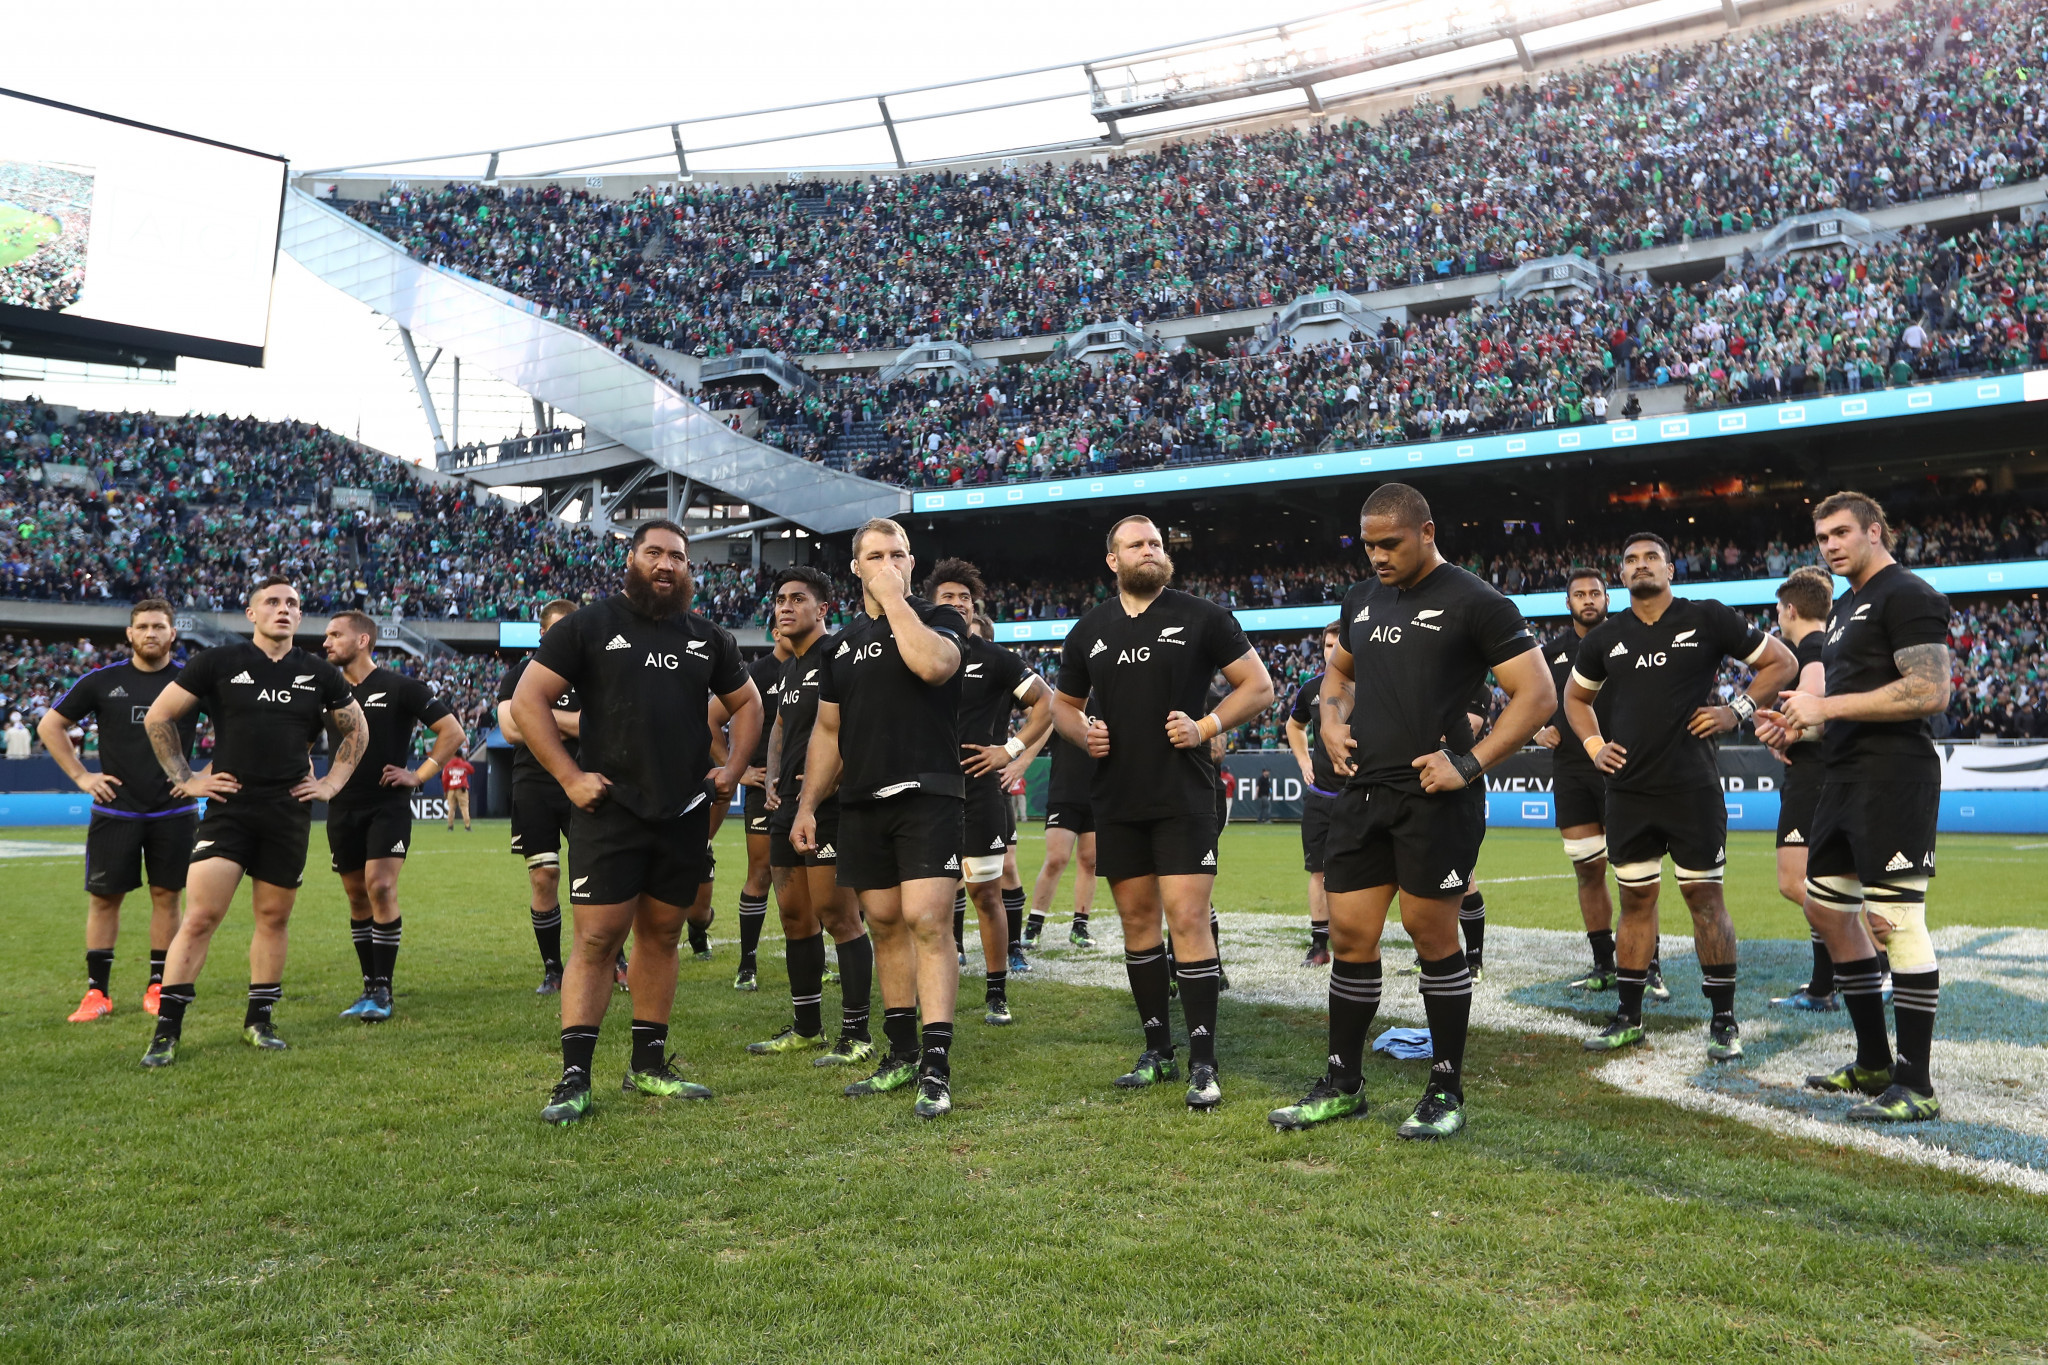 The All Blacks did not enjoy their visit to Soldier Field in Chicago in 2016, losing to Ireland 40-29 ©Getty Images